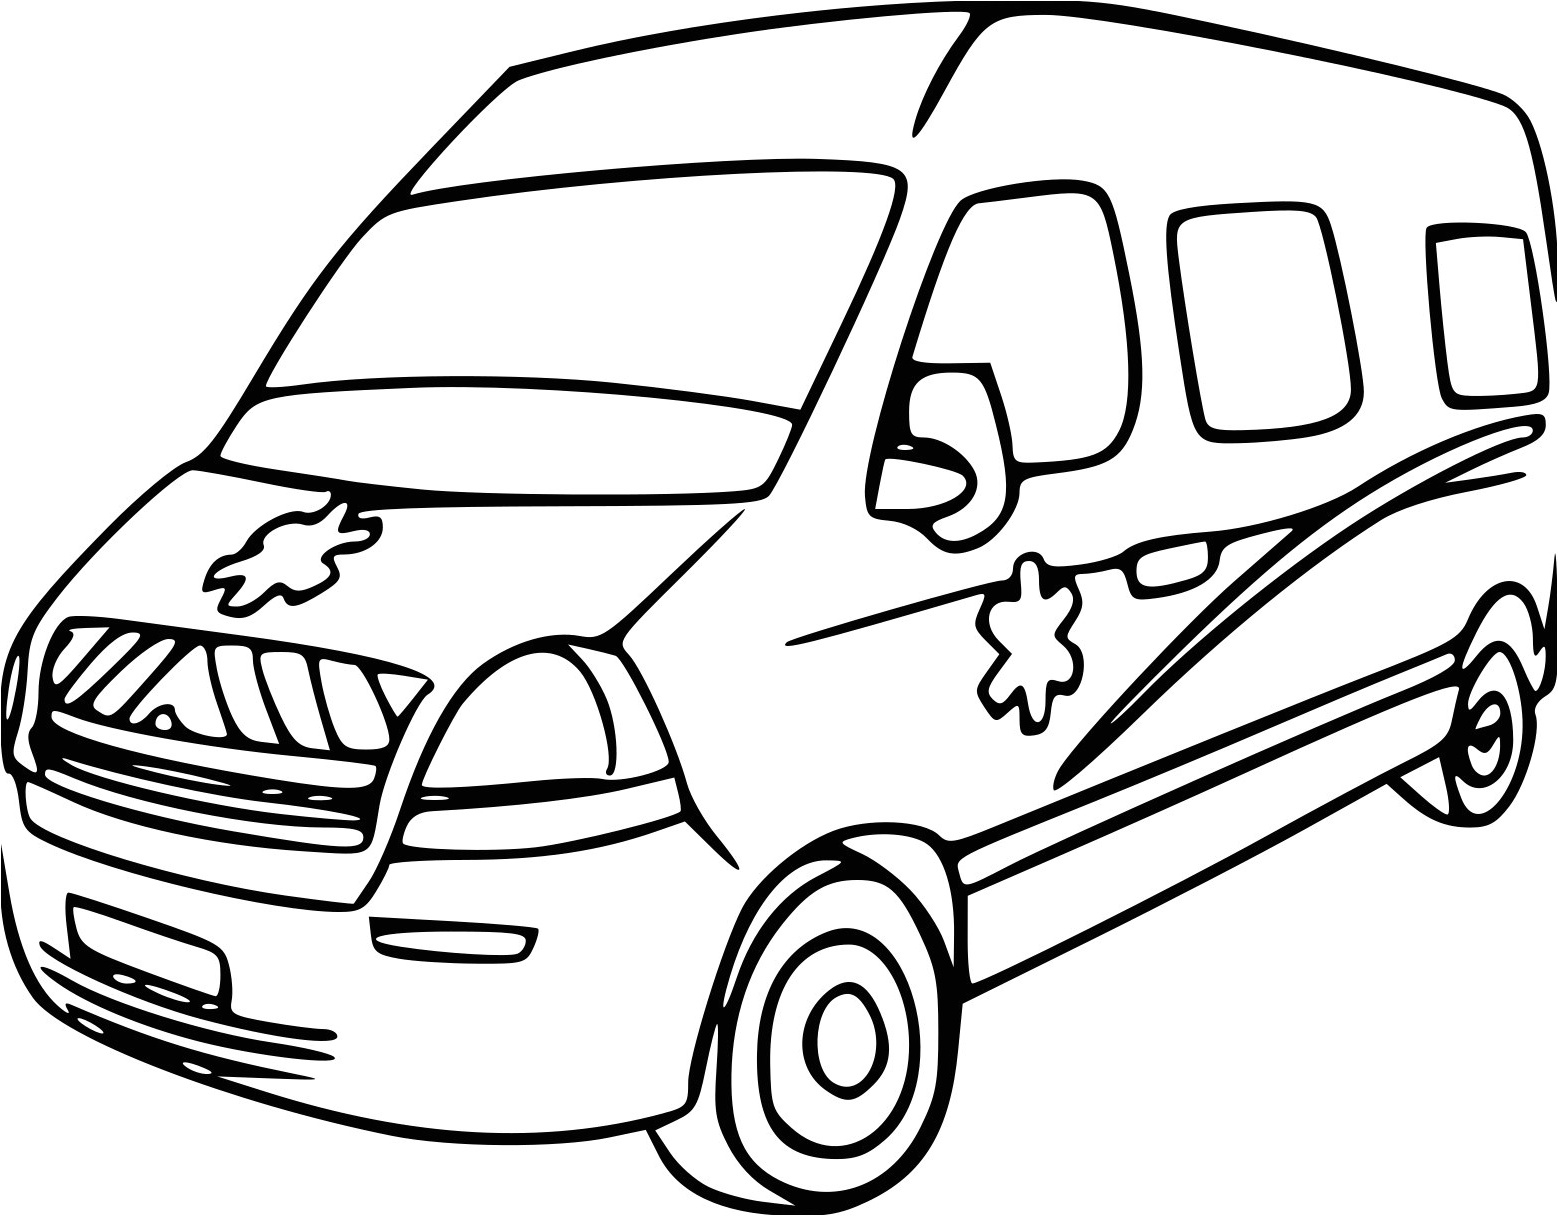 Agréable Coloriage Ambulance Pompier 13 sur Coloriage Books with Coloriage Ambulance Pompier